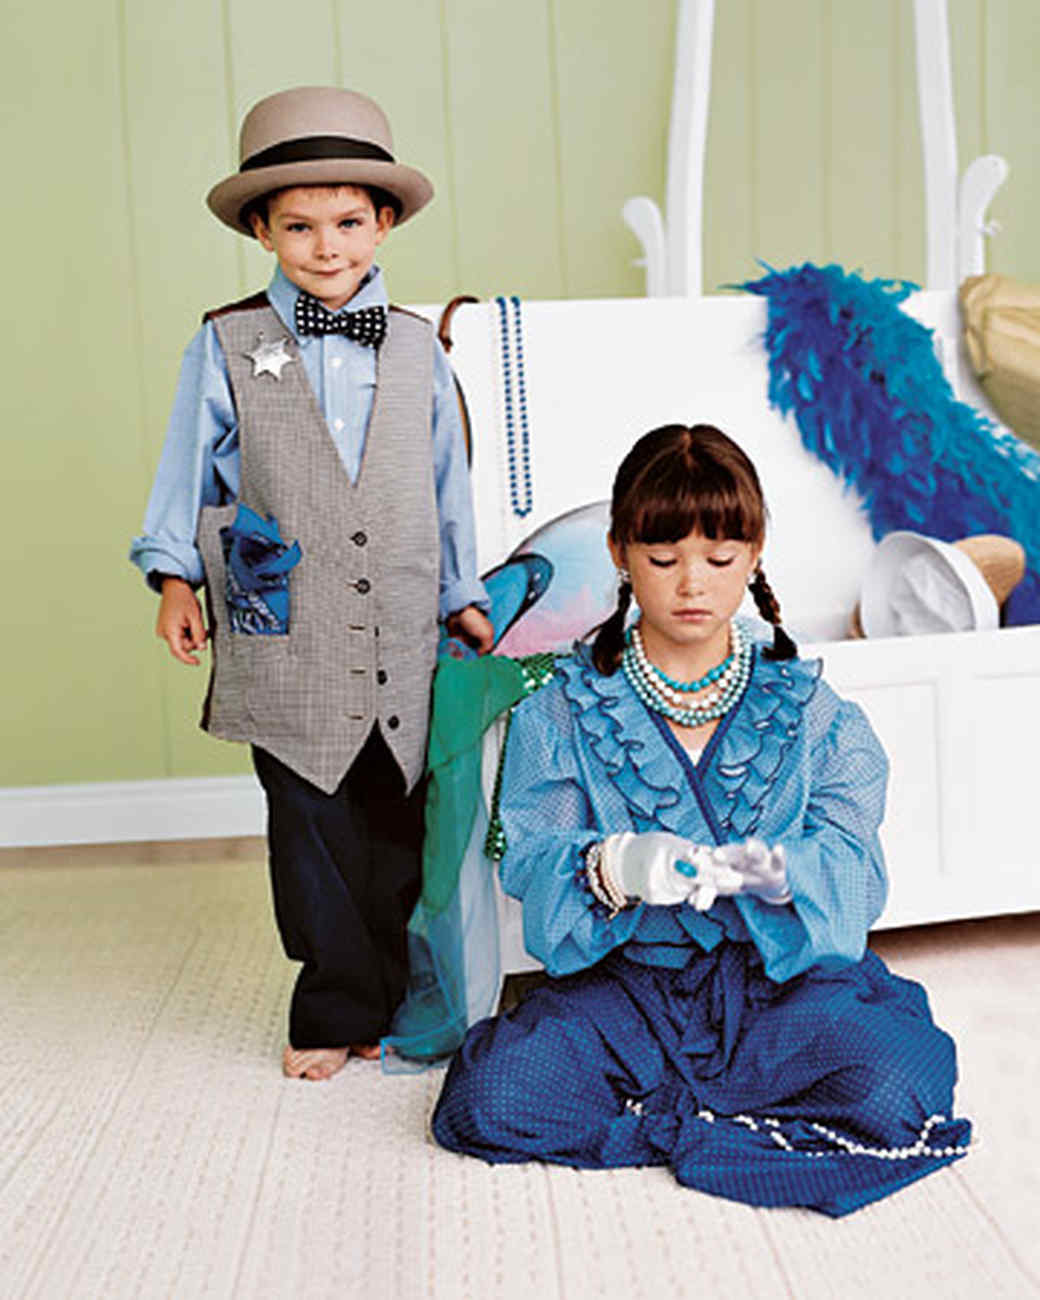 Dress Up Pretend Play Images On: Martha Stewart